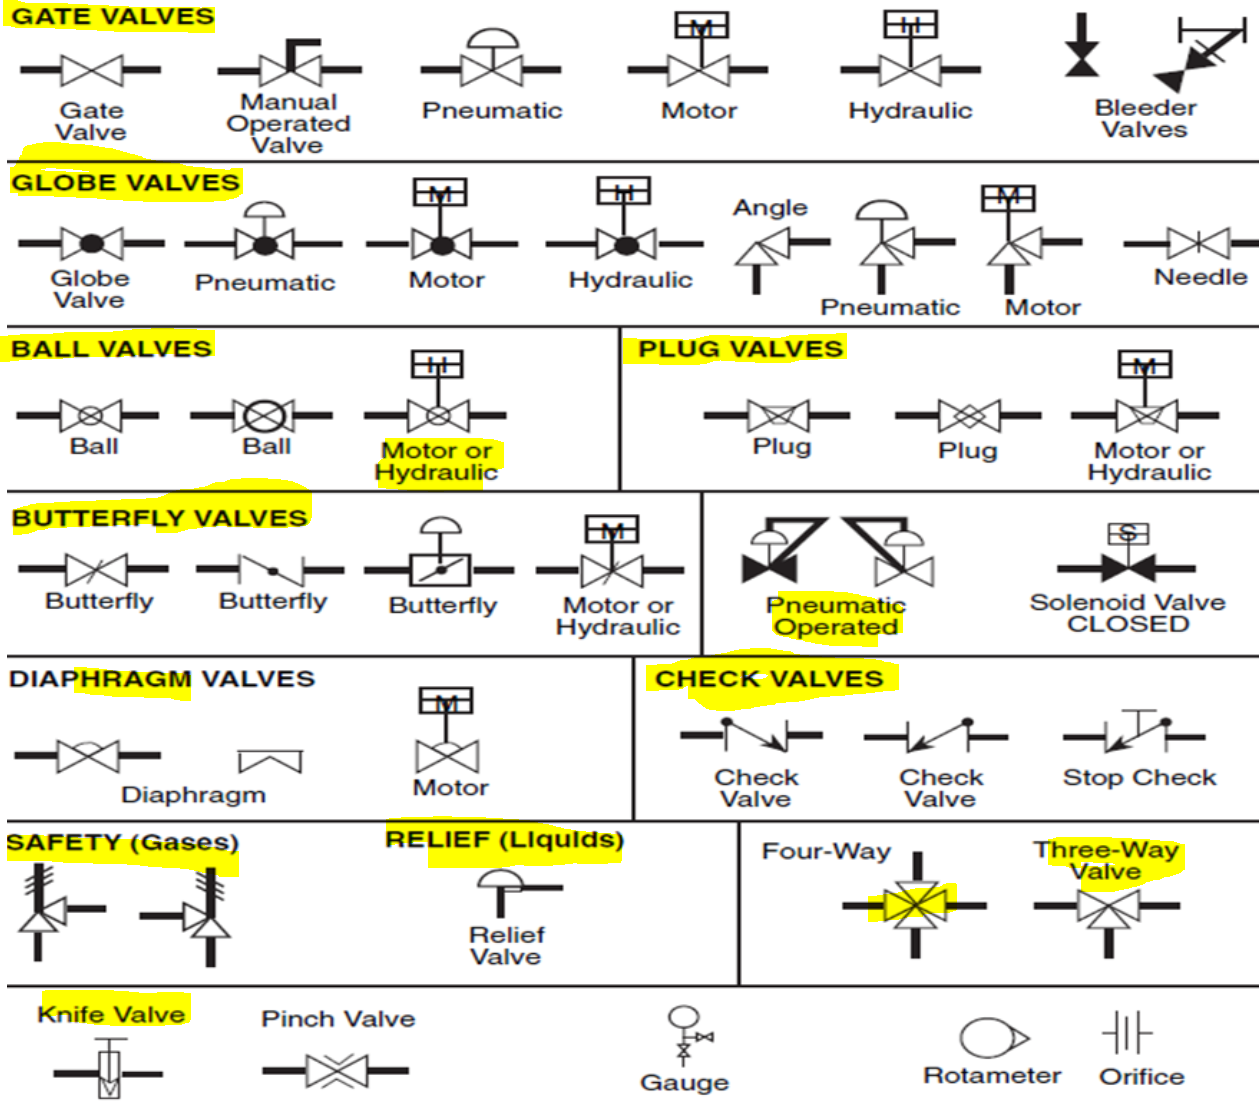 Smc Valve Wiring Guide And Troubleshooting Of Diagram Solenoid Asco Control Plumbing Diagrams Pneumatic Product Valves